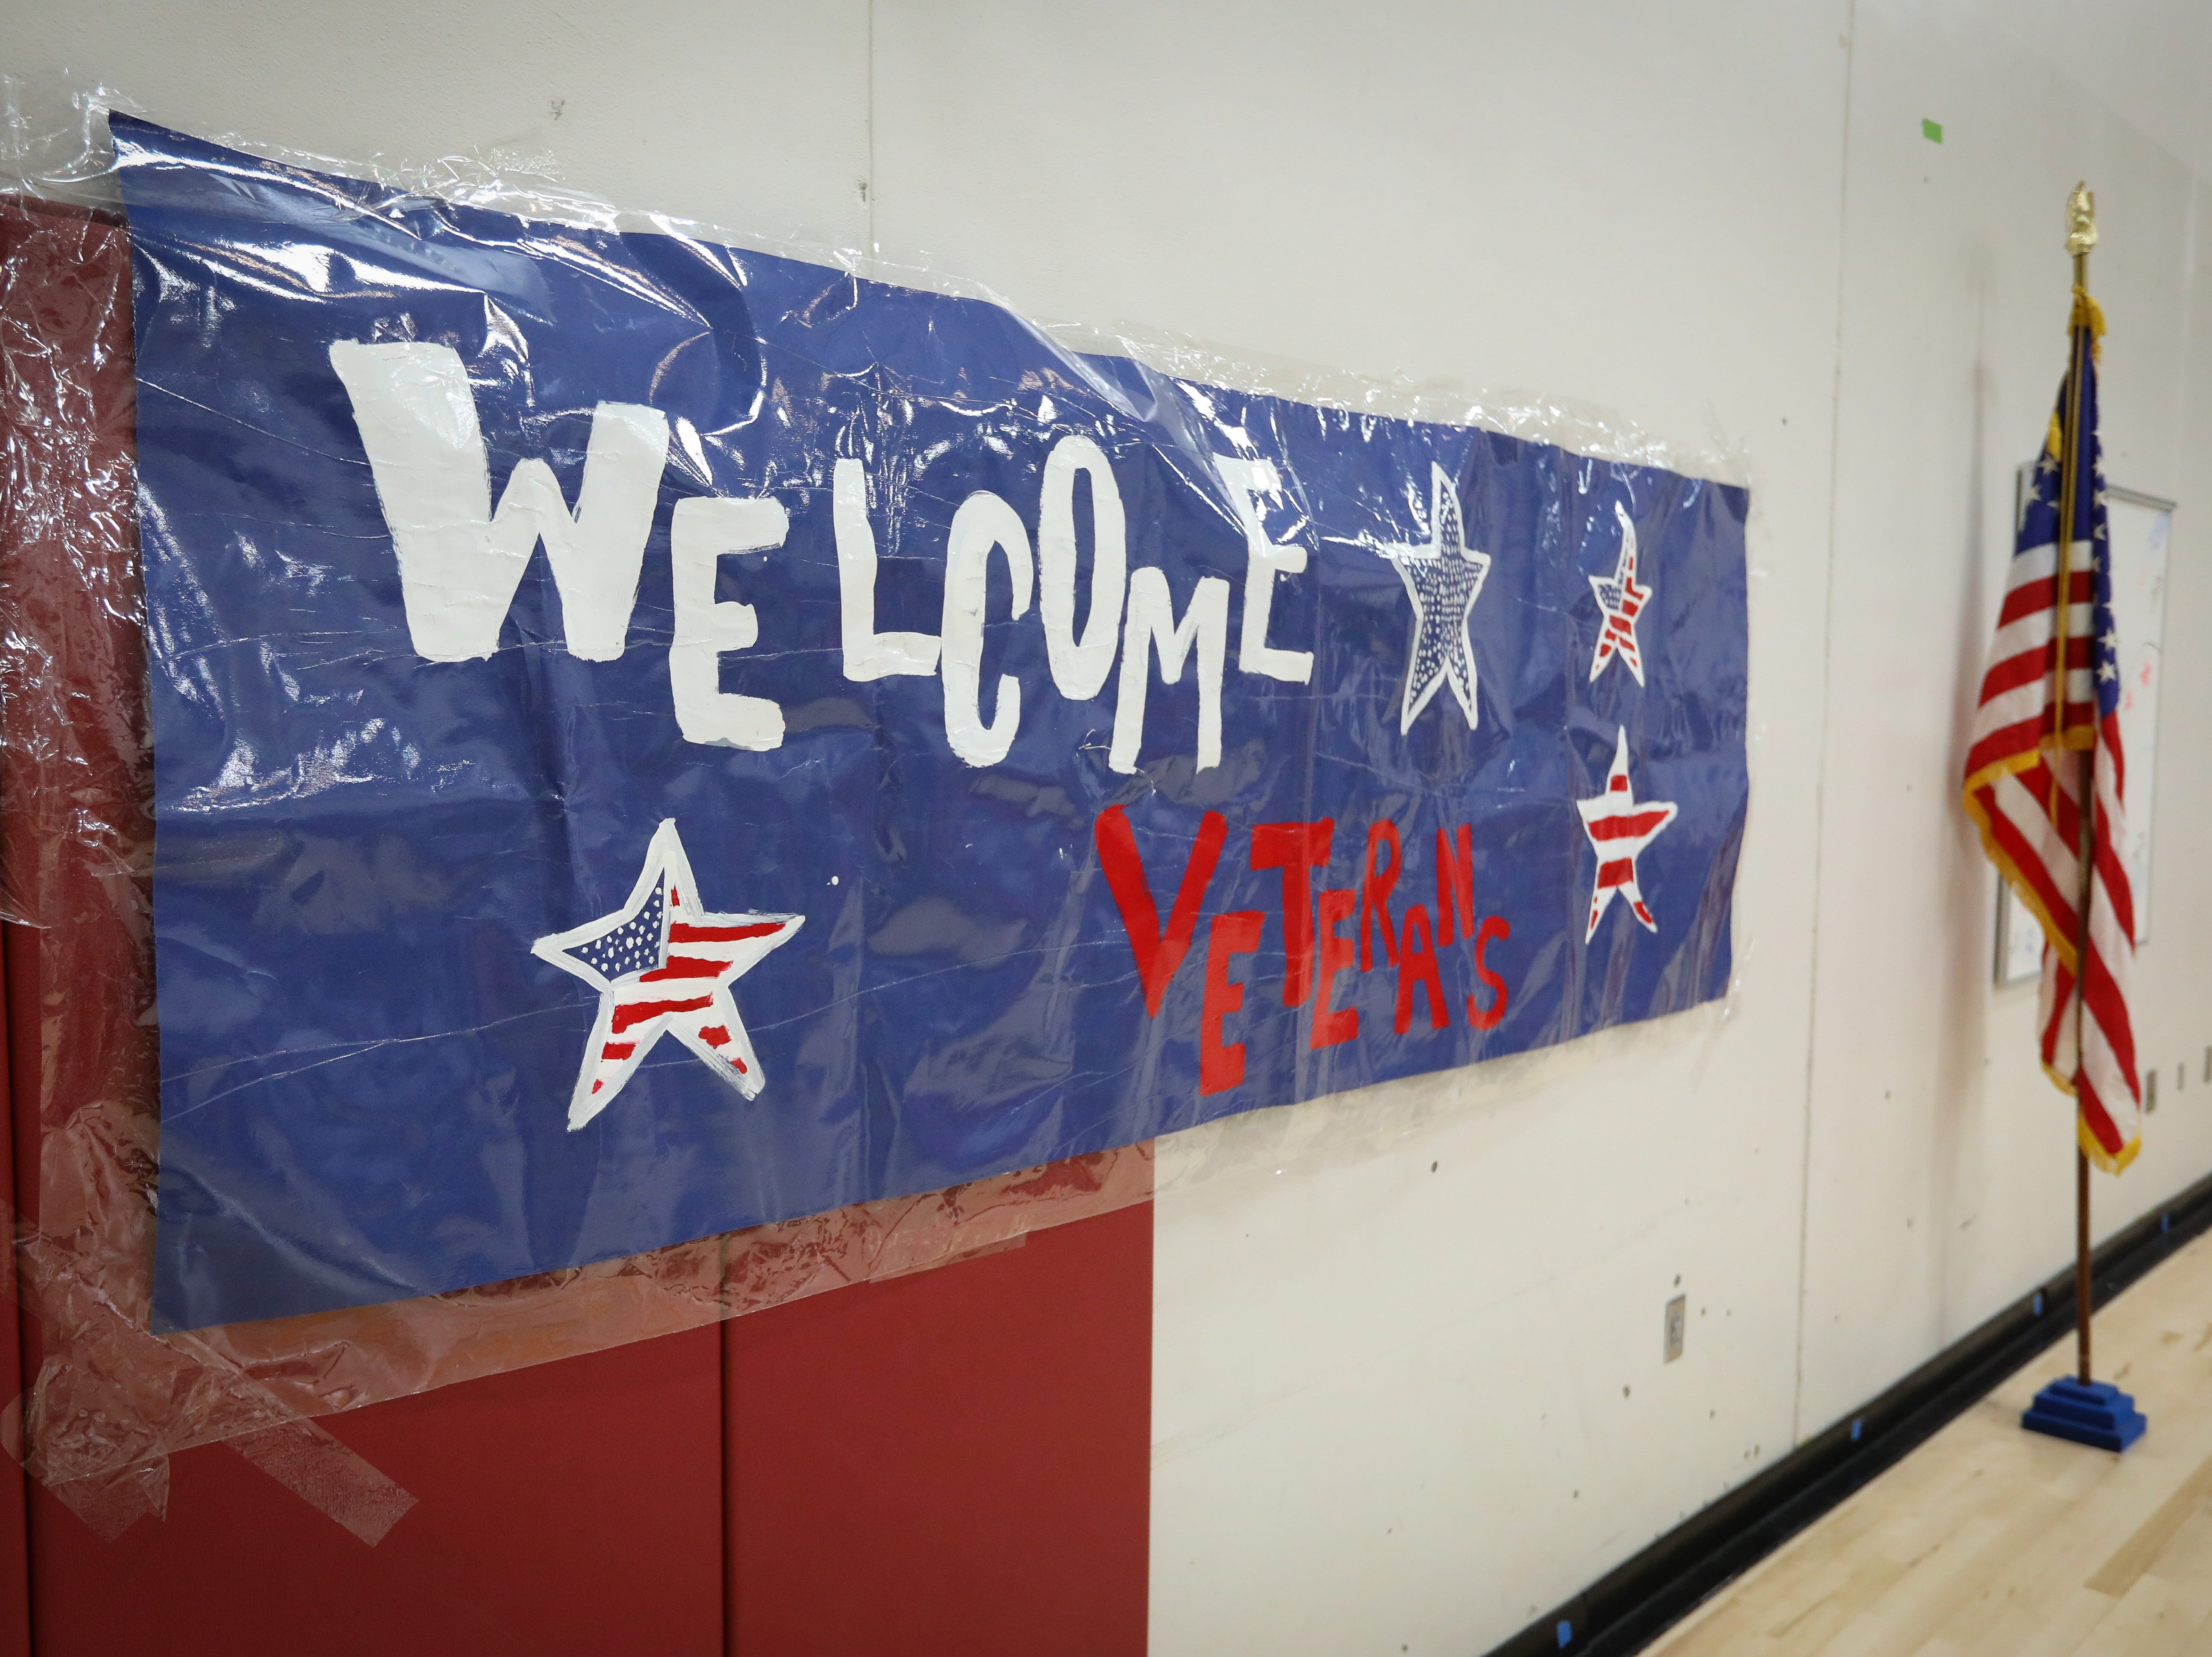 A sign welcomes attendees at a Veterans Day Breakfast at Northview Middle School on Wednesday, Nov. 14, 2018 in Ankeny, Iowa. Middle school students hosted the veterans to share their gratitude before an assembly.